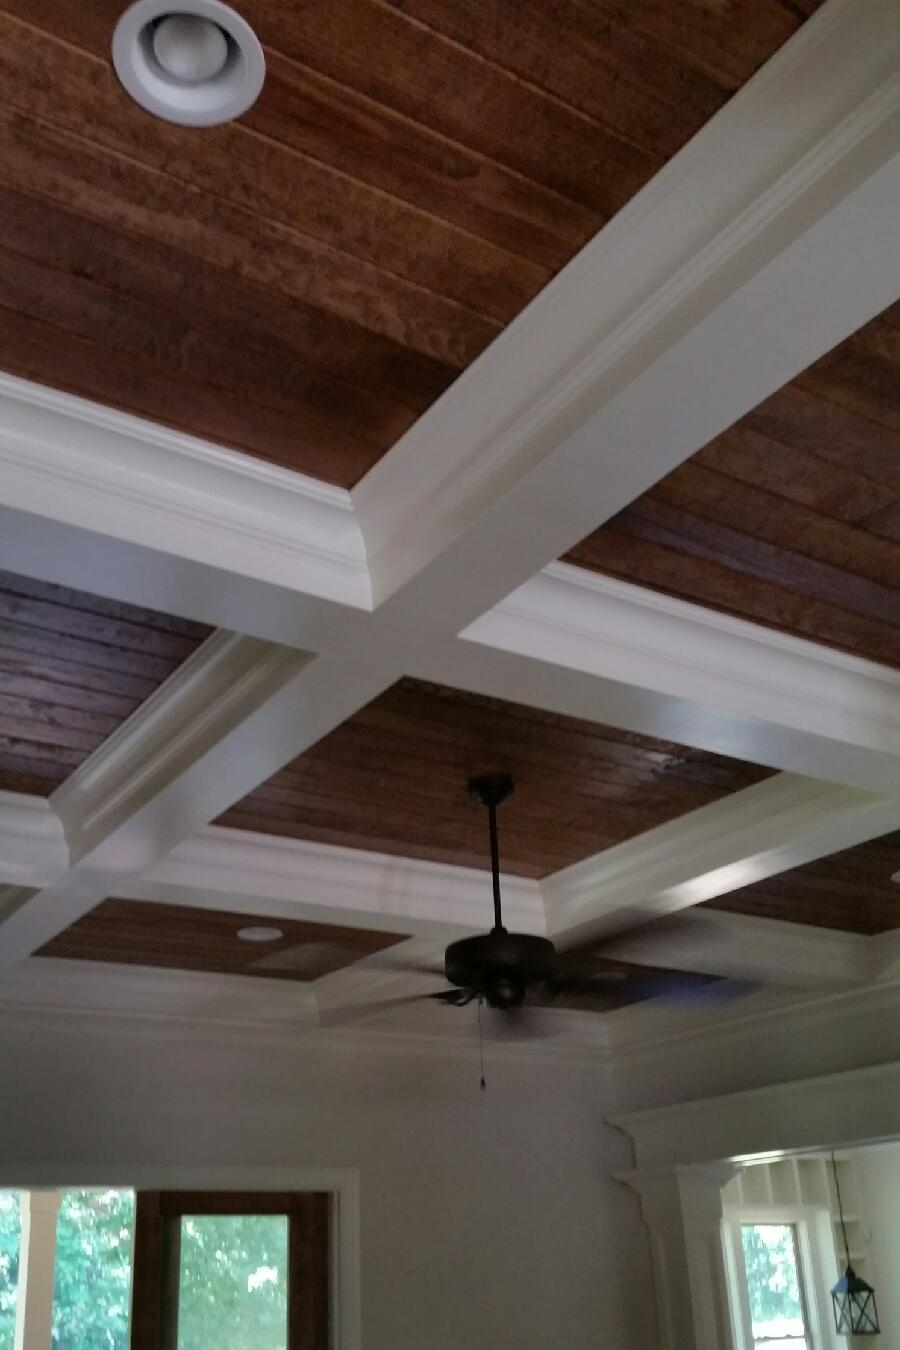 Tic-Tac-Toe Coffered Ceiling